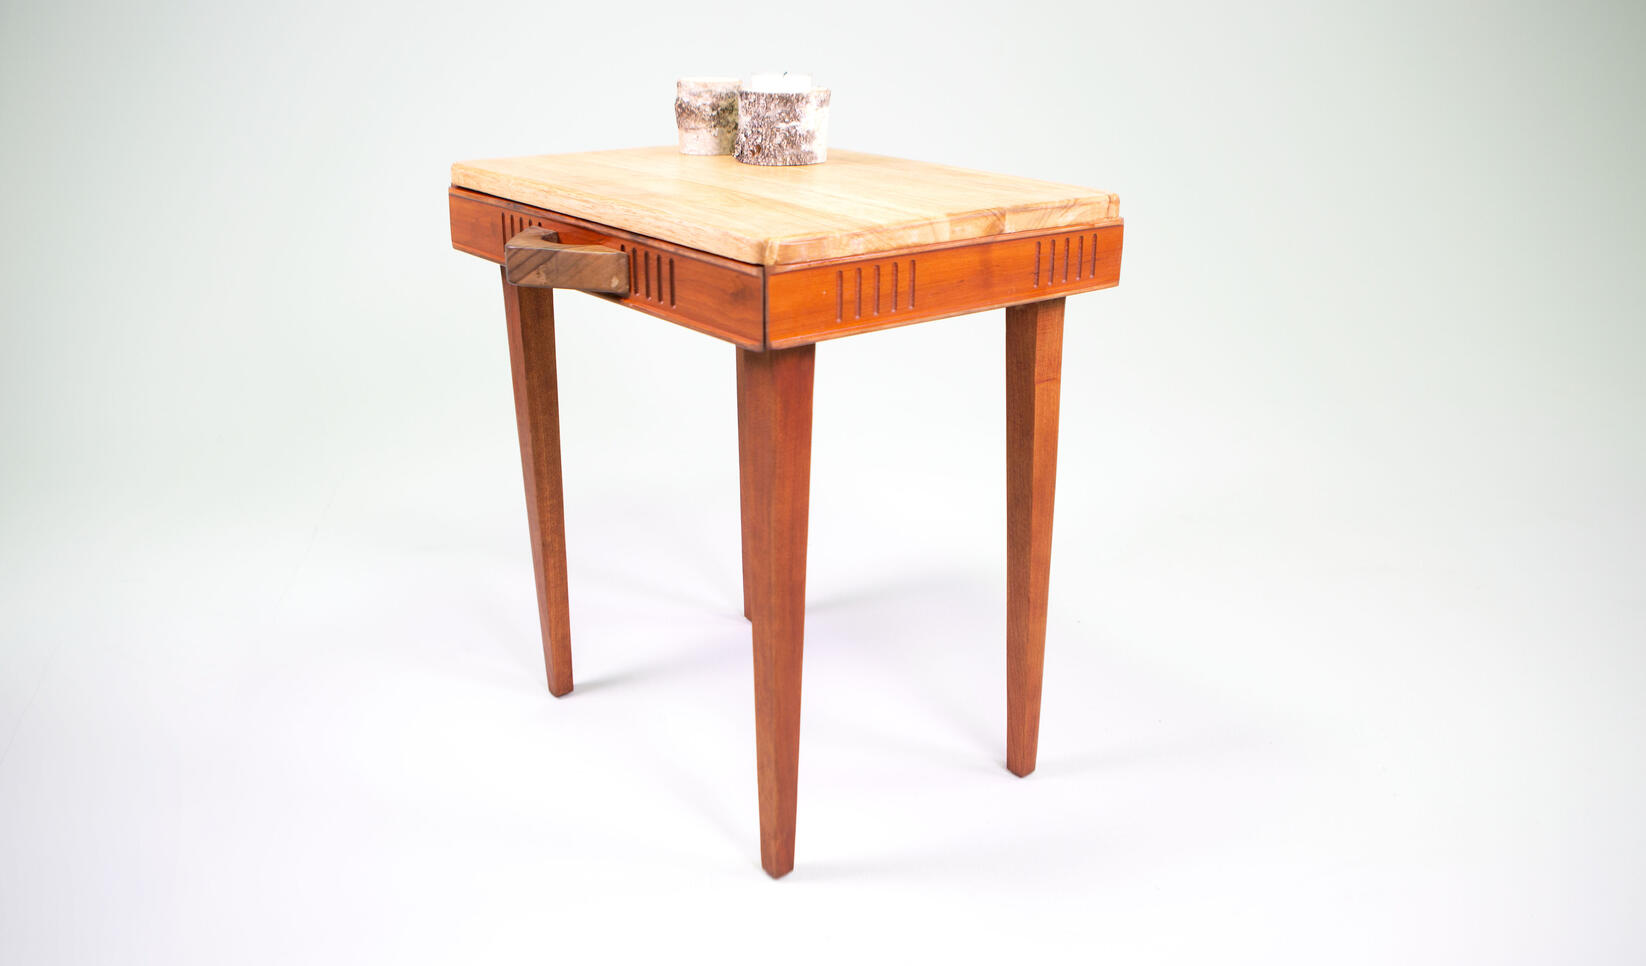 A wooden chess table with a drawer ; Chance Tatum